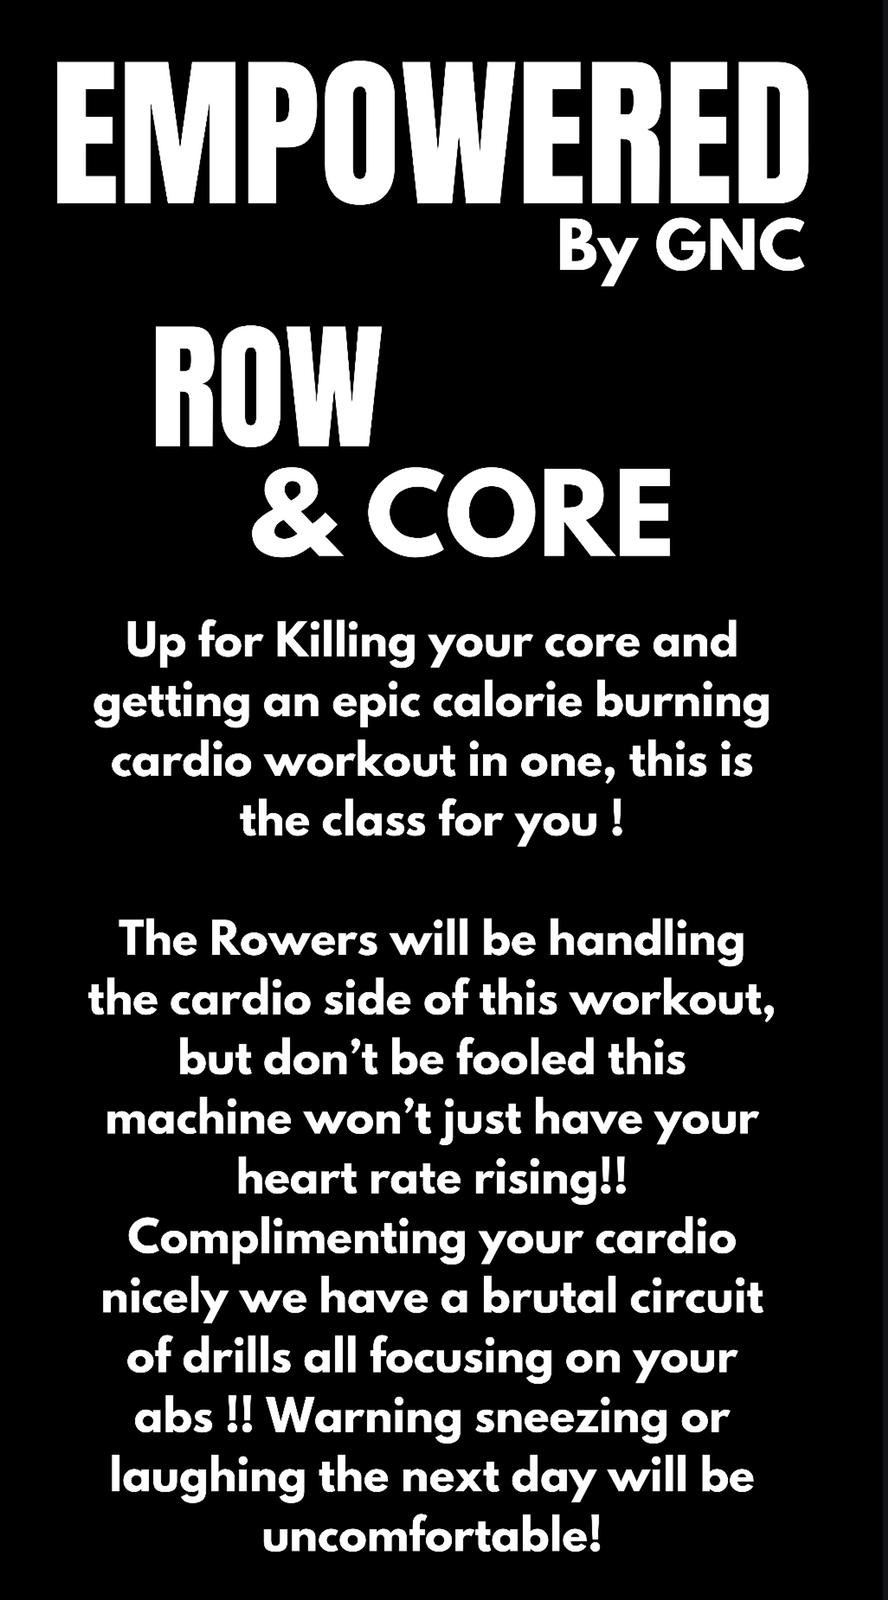 Empowered Row and Core by GNC